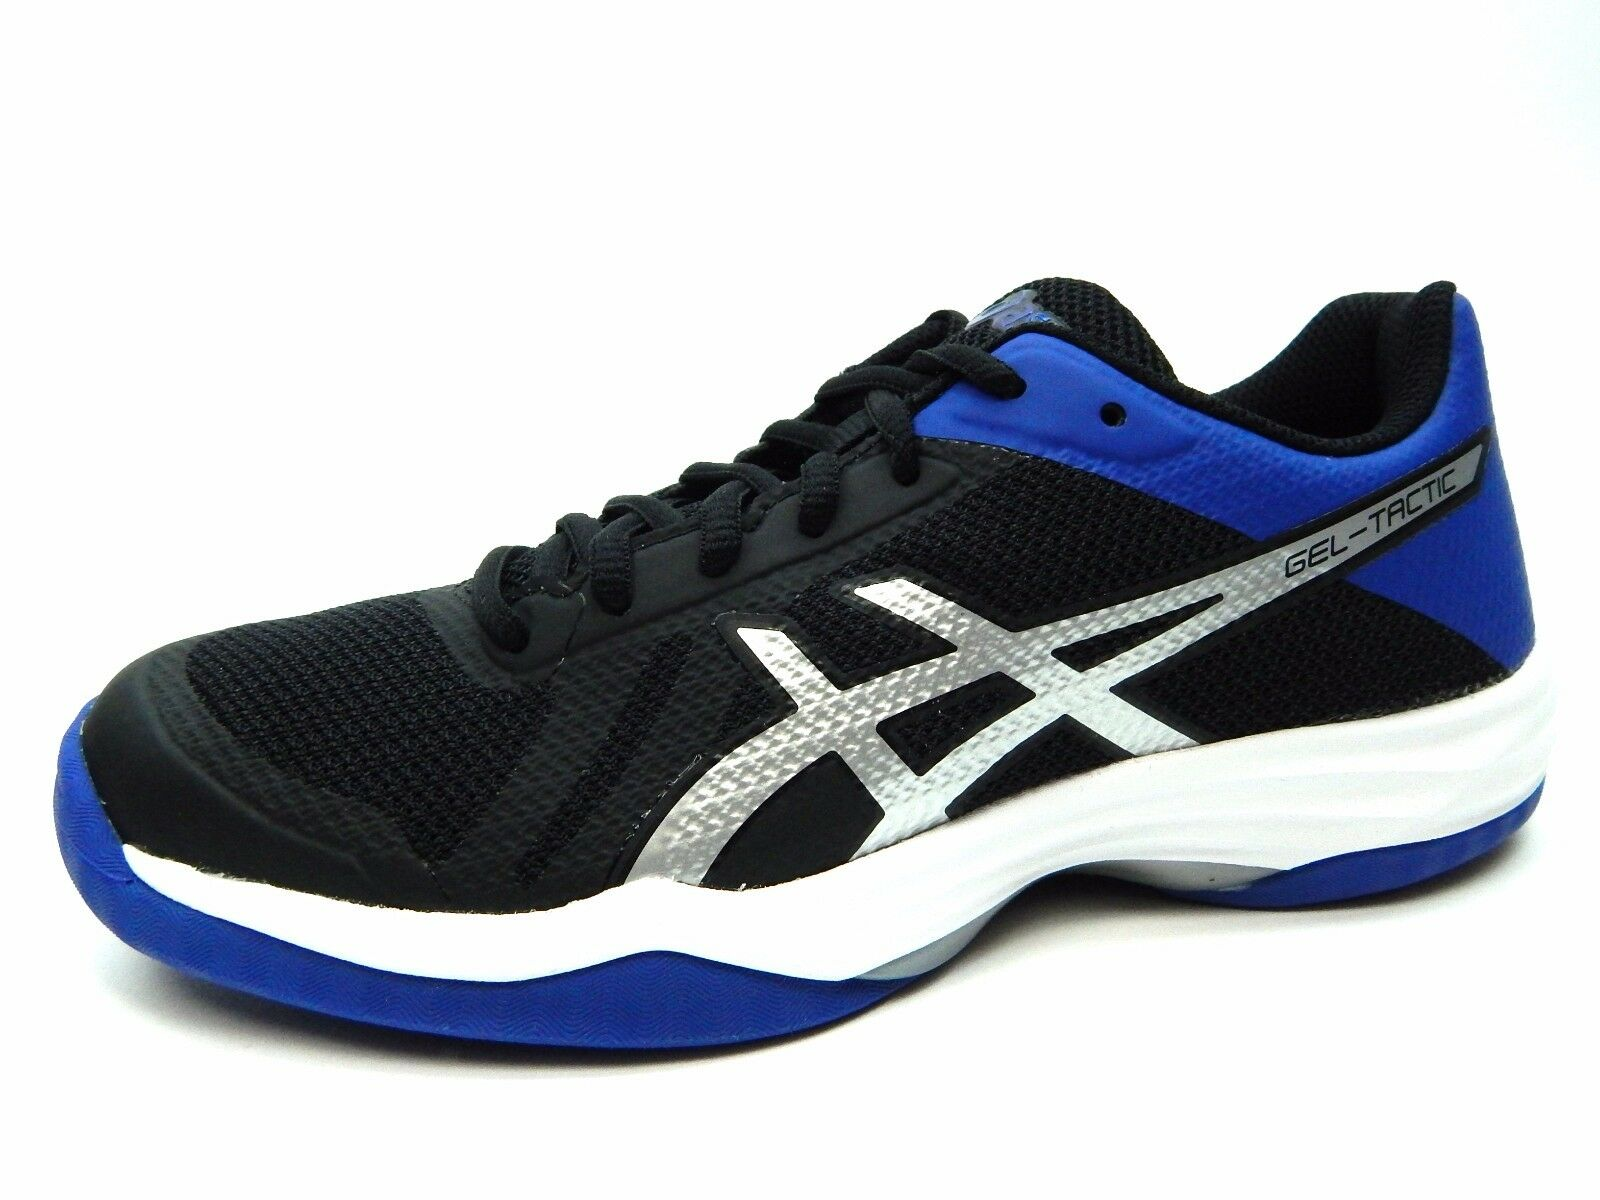 ASICS GEL TACTIC BLACK blueE SILVER B752N 9045 WOMEN SHOES